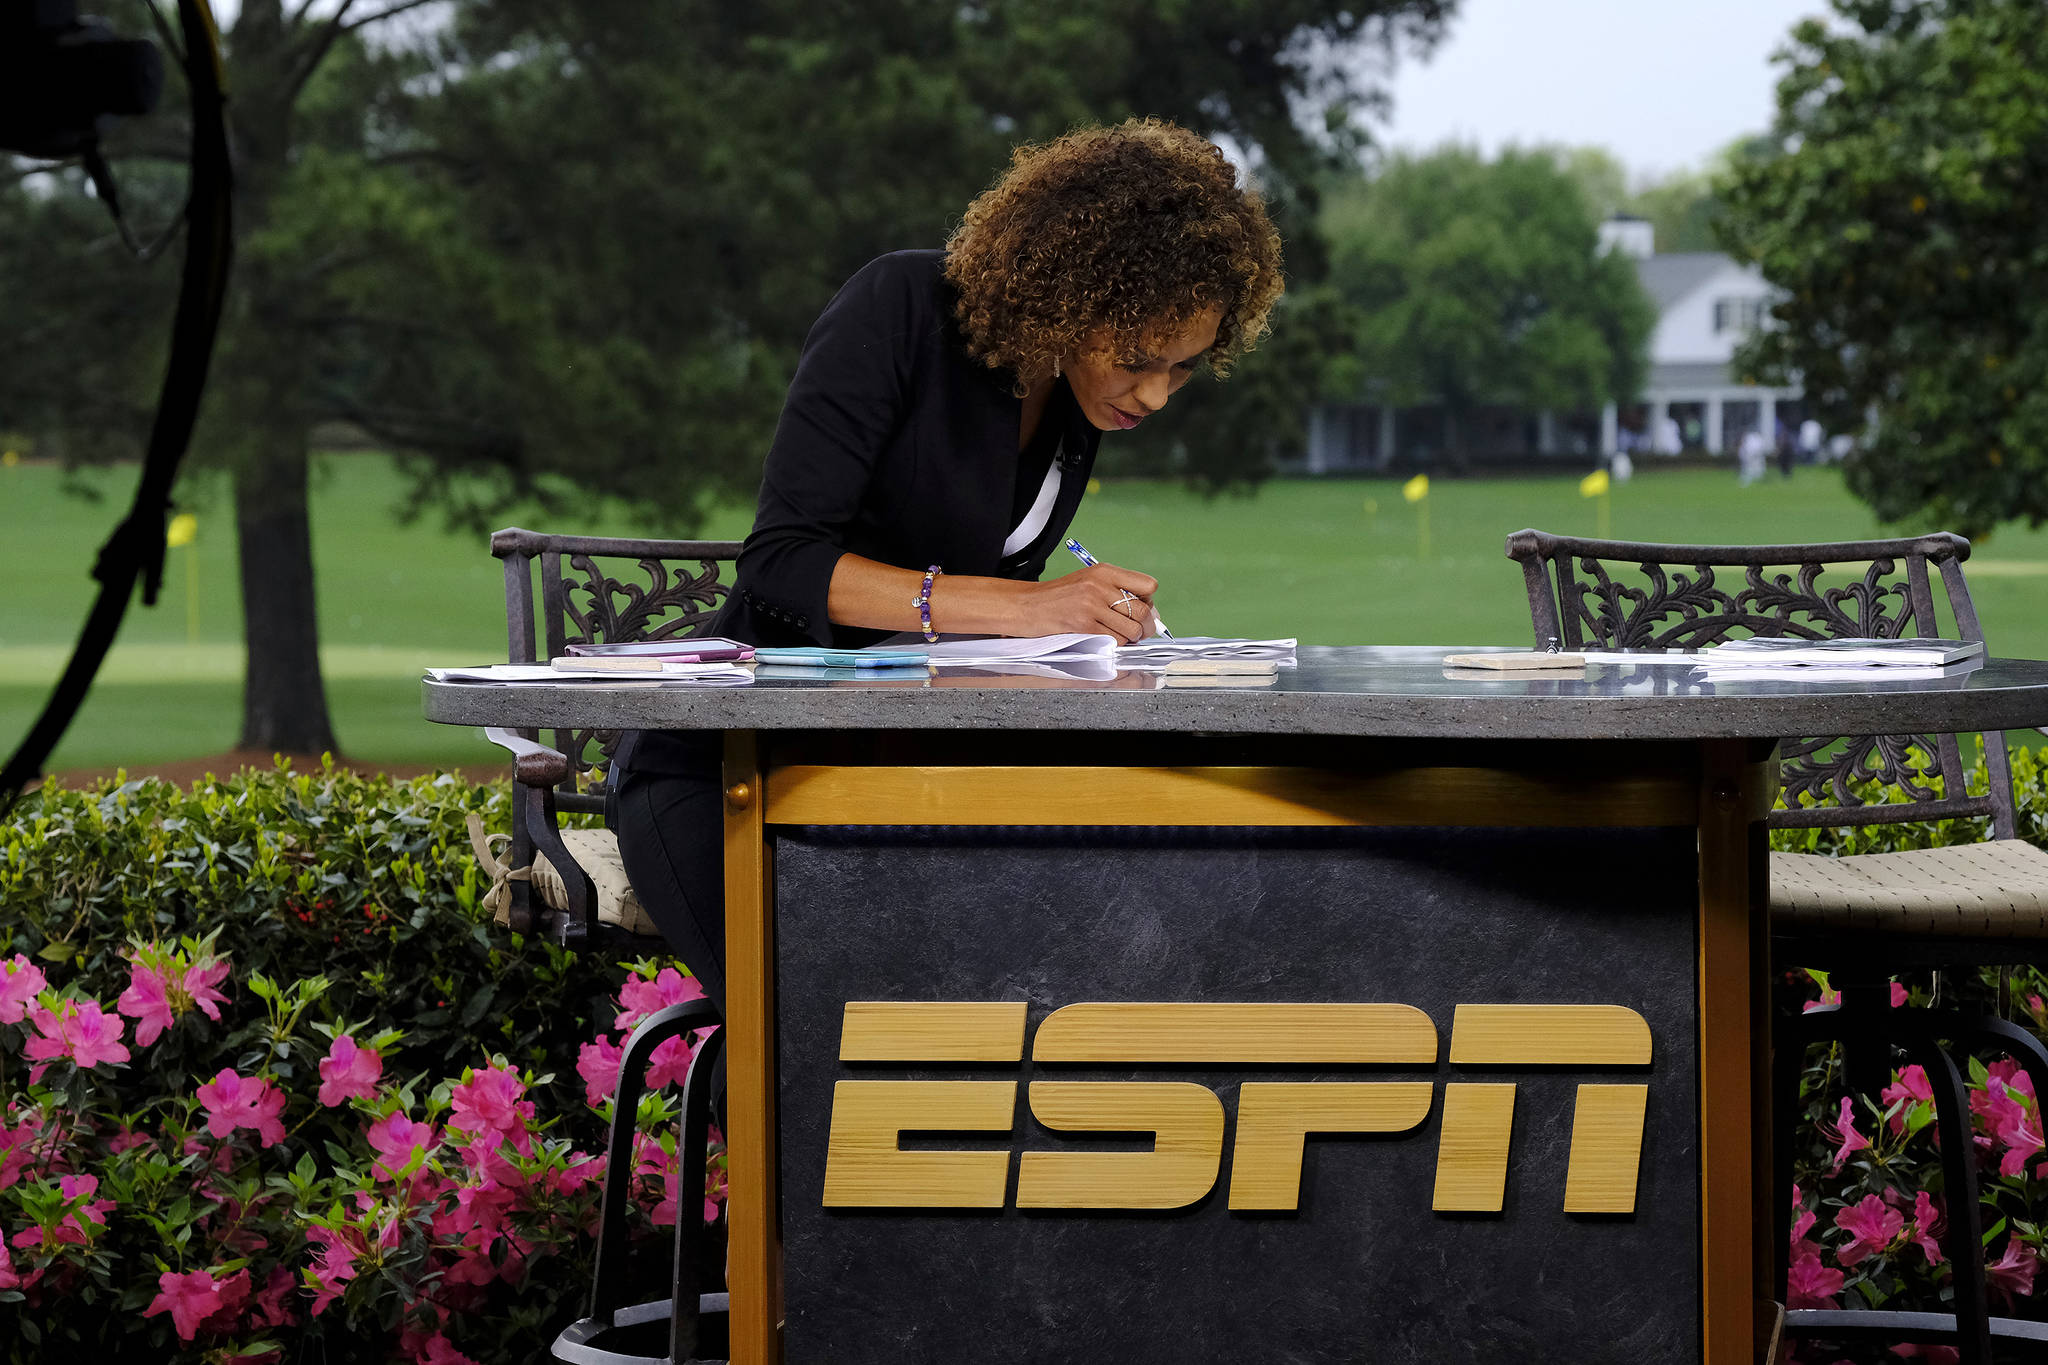 Espn S Sage Steele Awed By First Masters Appearance 2021 Masters